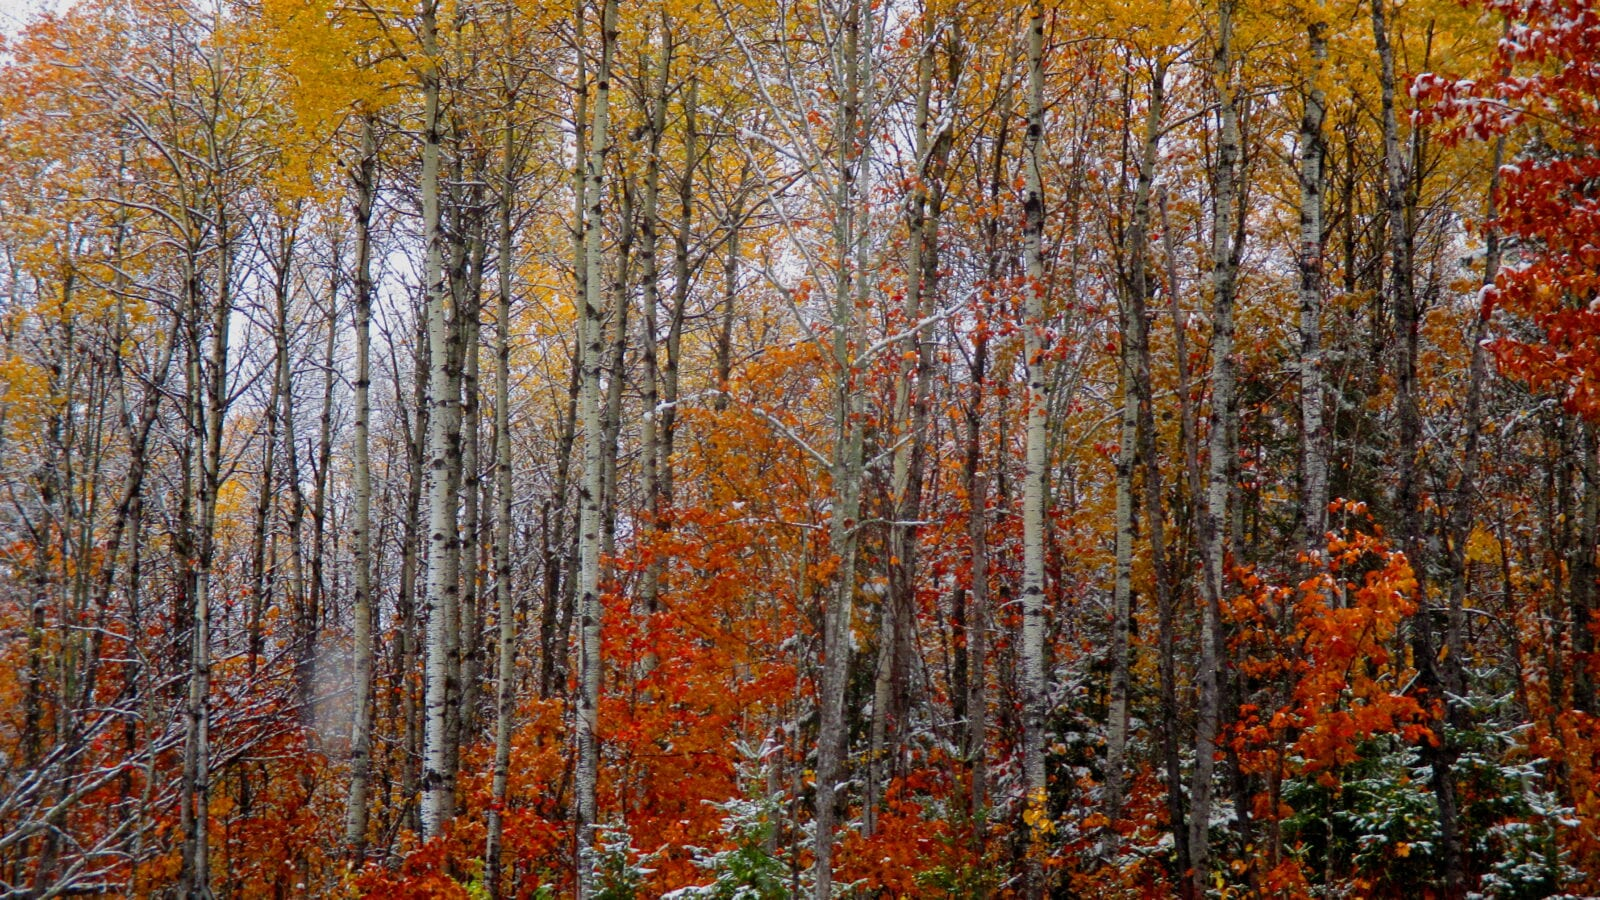 photo of autumn trees with a dusting of snow